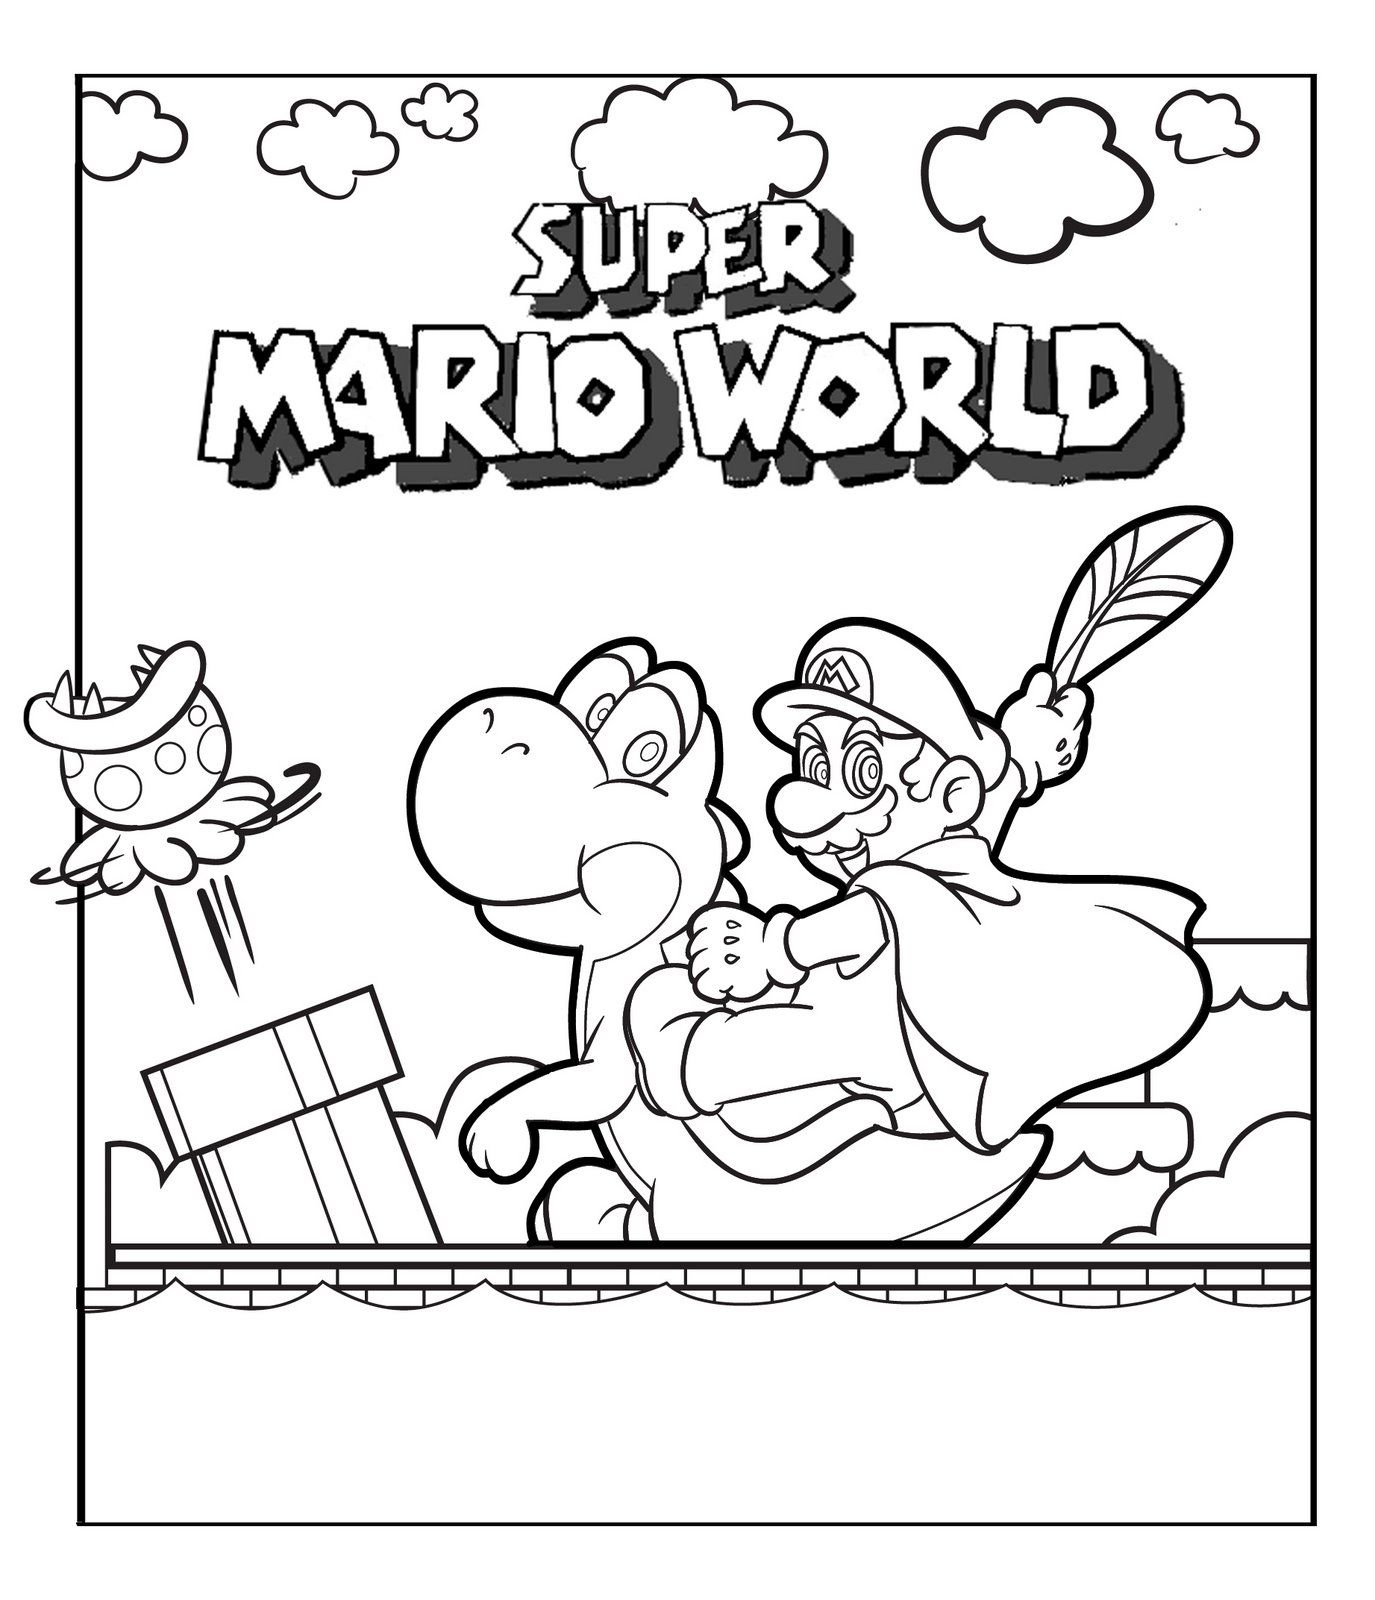 Printable Mario Coloring Pages Mario Filing and Crafty kids